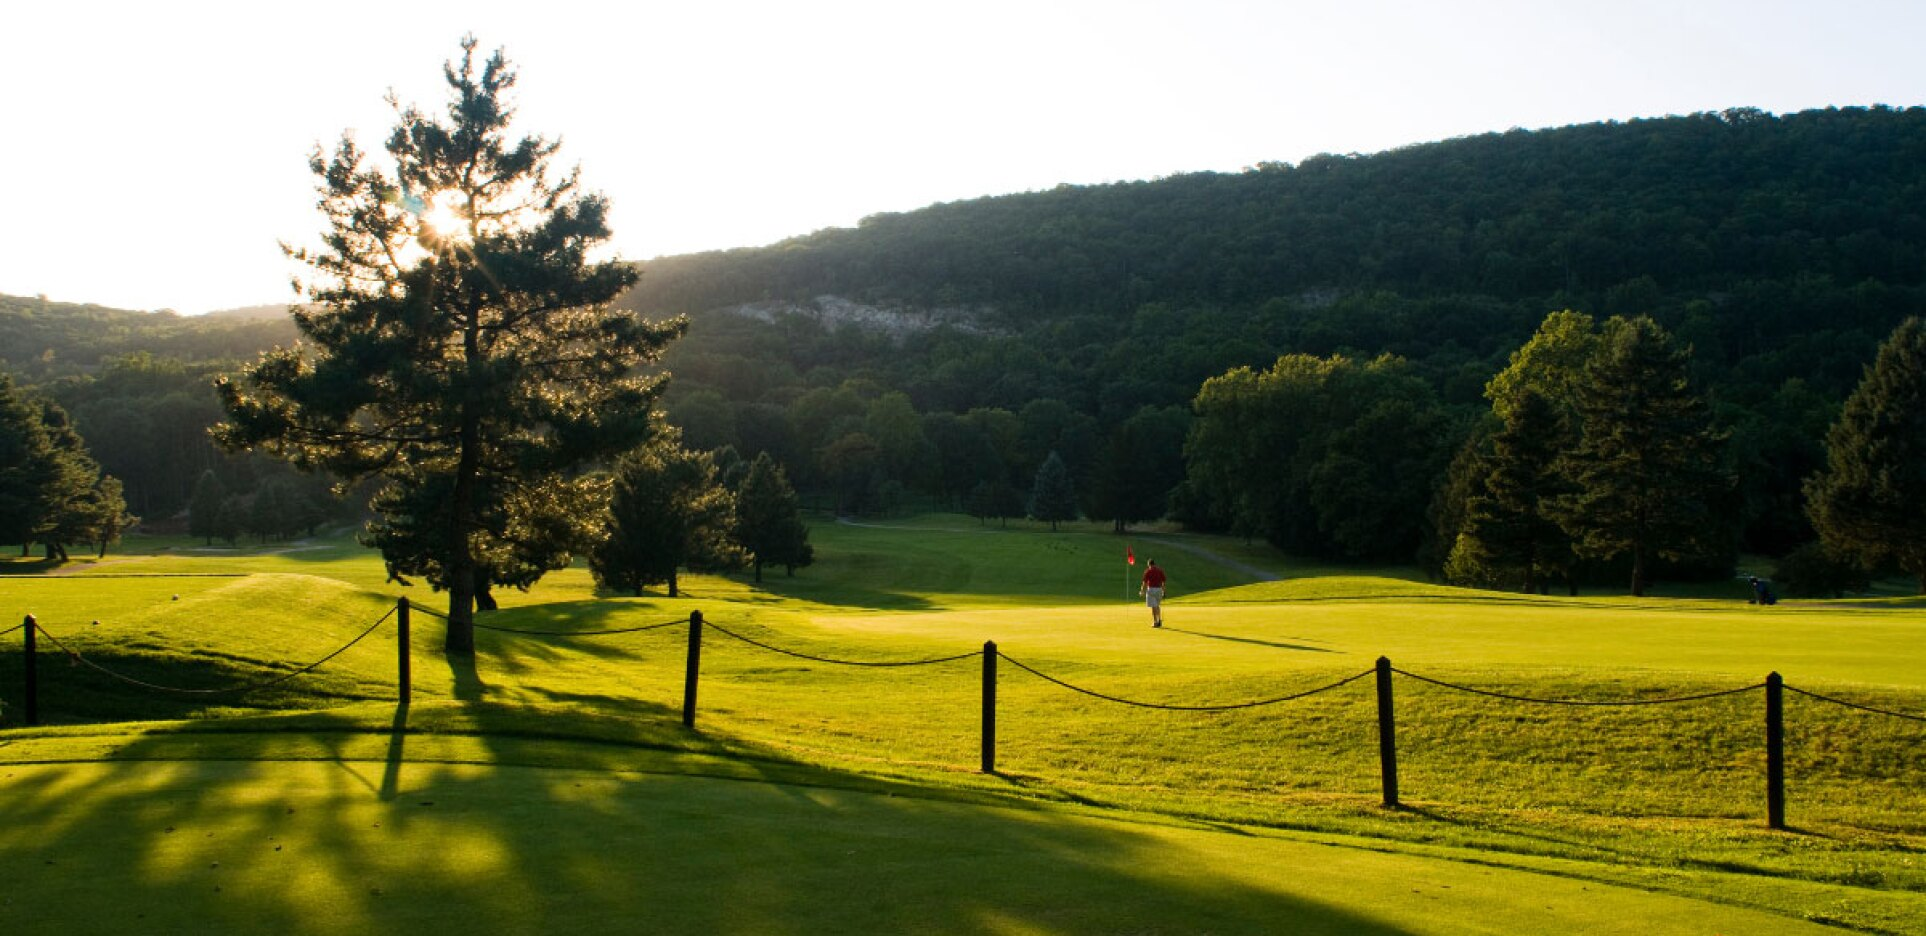 Sunset Valley Golf Course, Pompton Plains, New Jersey